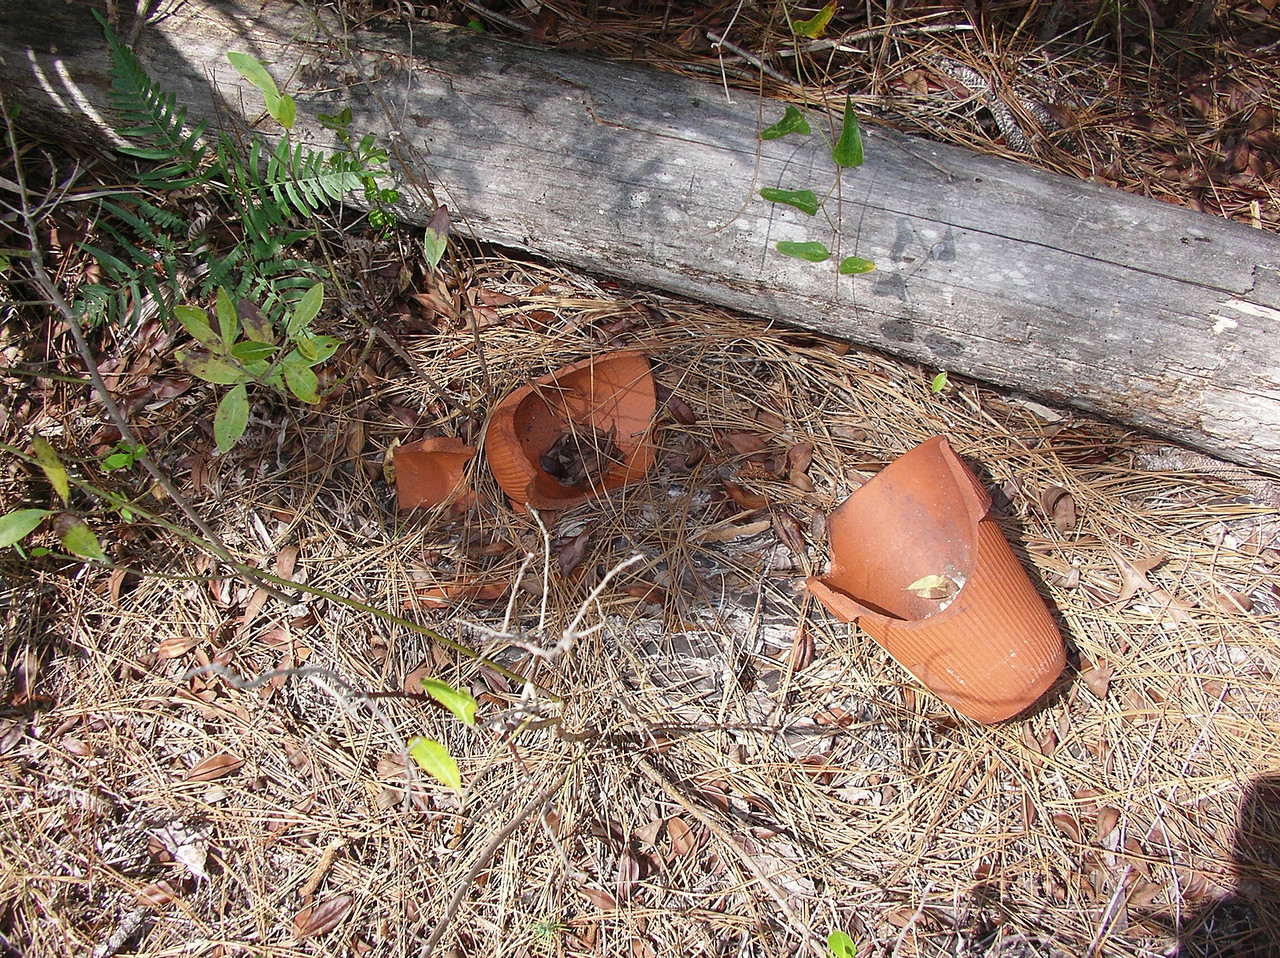 Historic turpentine pots in the forest<br /> Photo credit: Ian Brown / Florida Trail Association